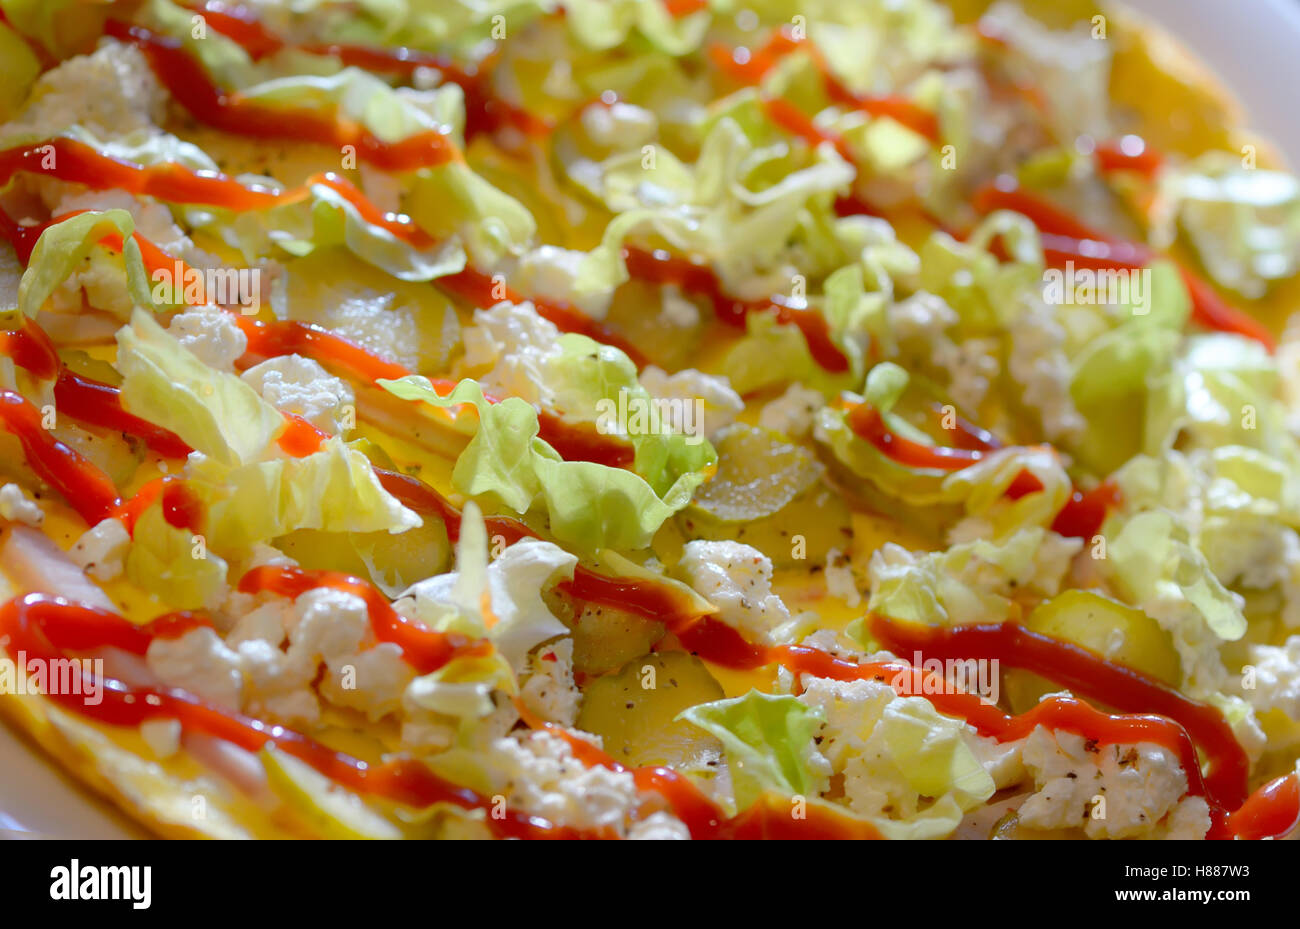 Ham and cheese omelet with vegetables - Stock Image